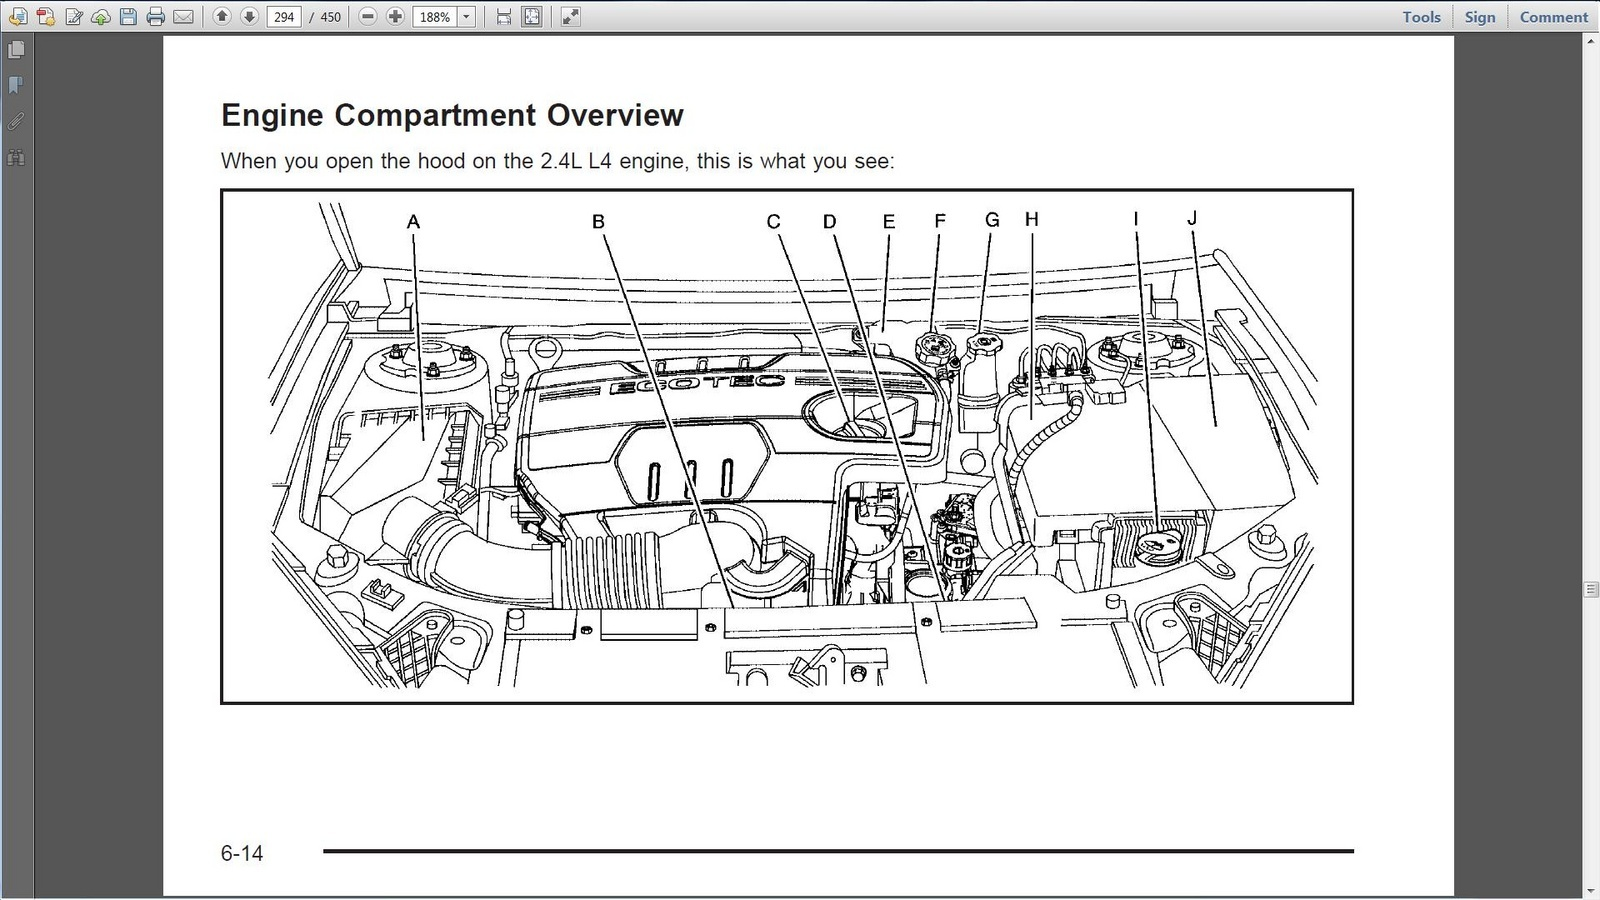 hight resolution of static cargurus com images site 2013 02 14 15 05 p 2000 chevy impala engine diagram 2000 chevrolet impala engine diagram